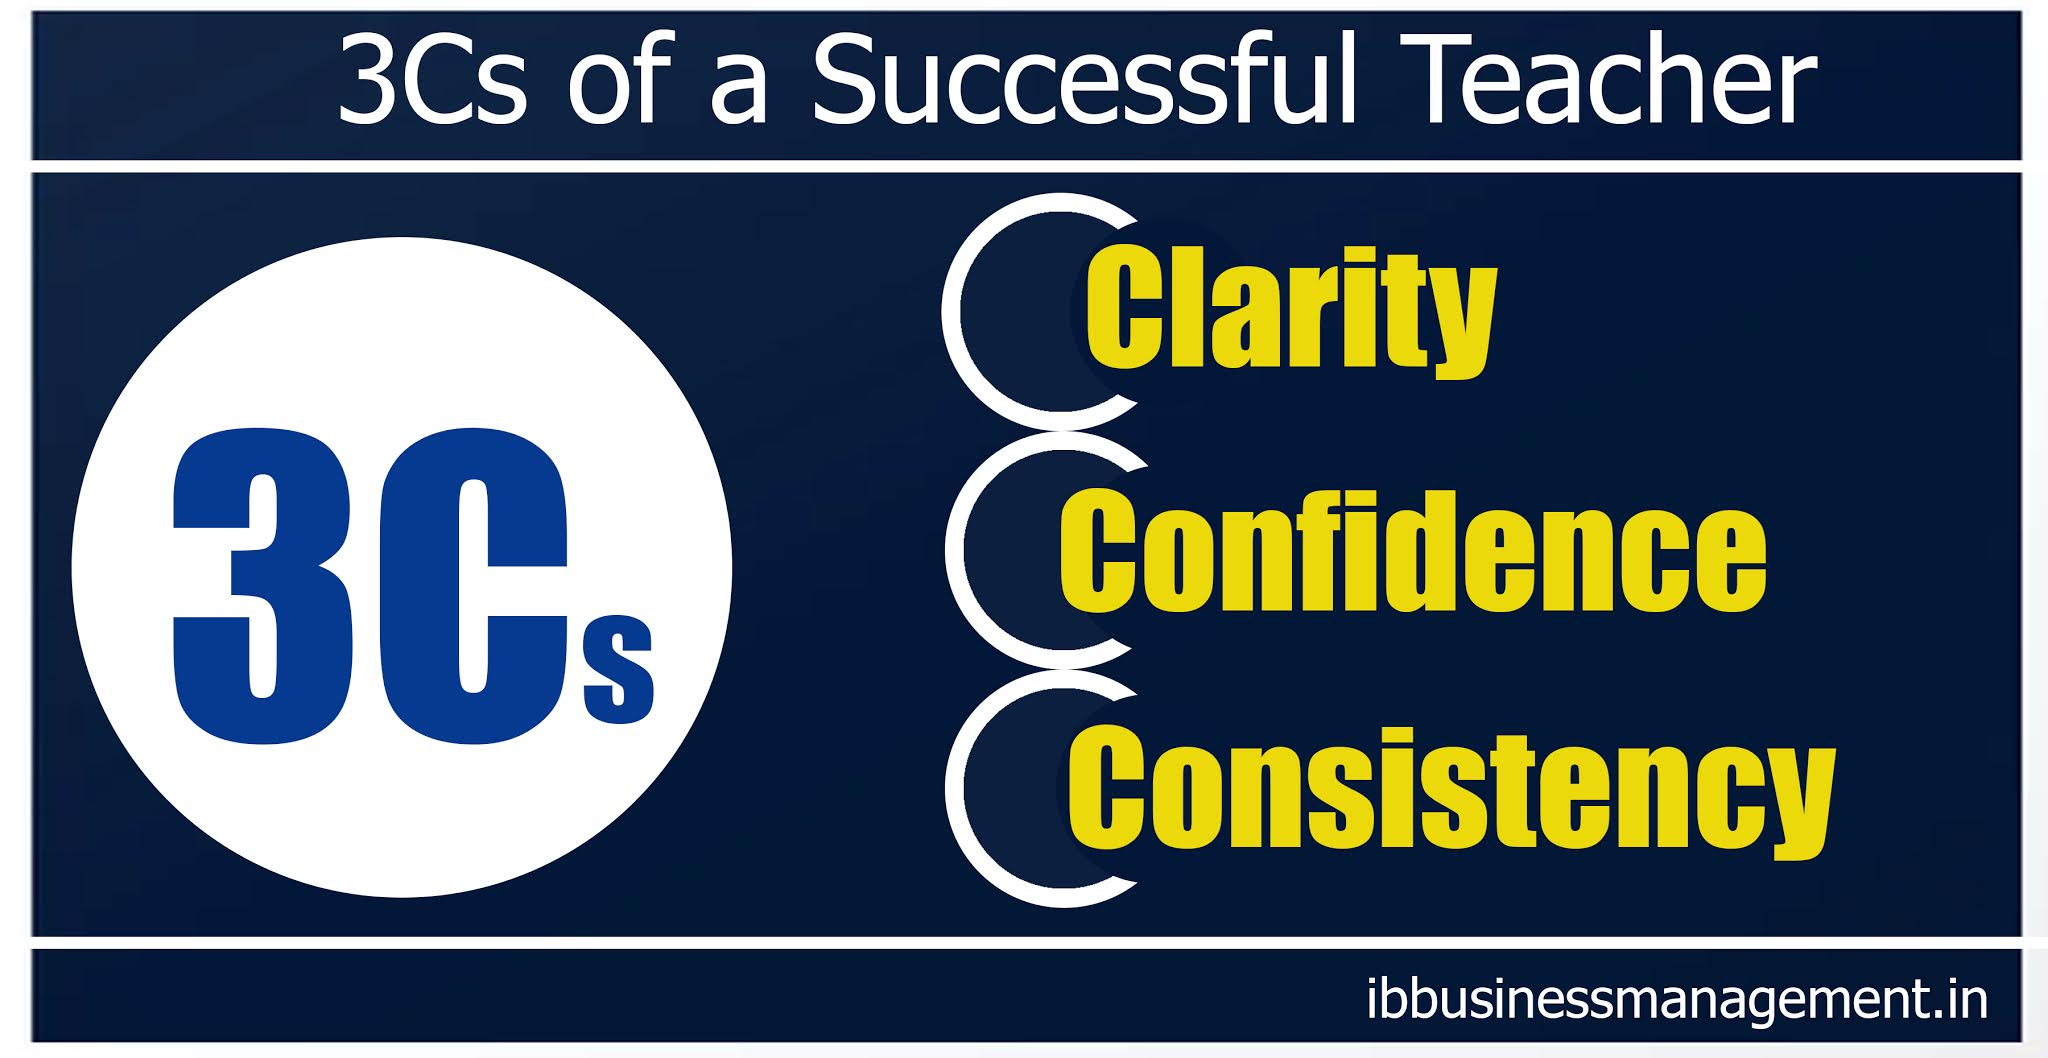 3 Cs of a Successful Teacher- Clarity, Confidence, and Consistency